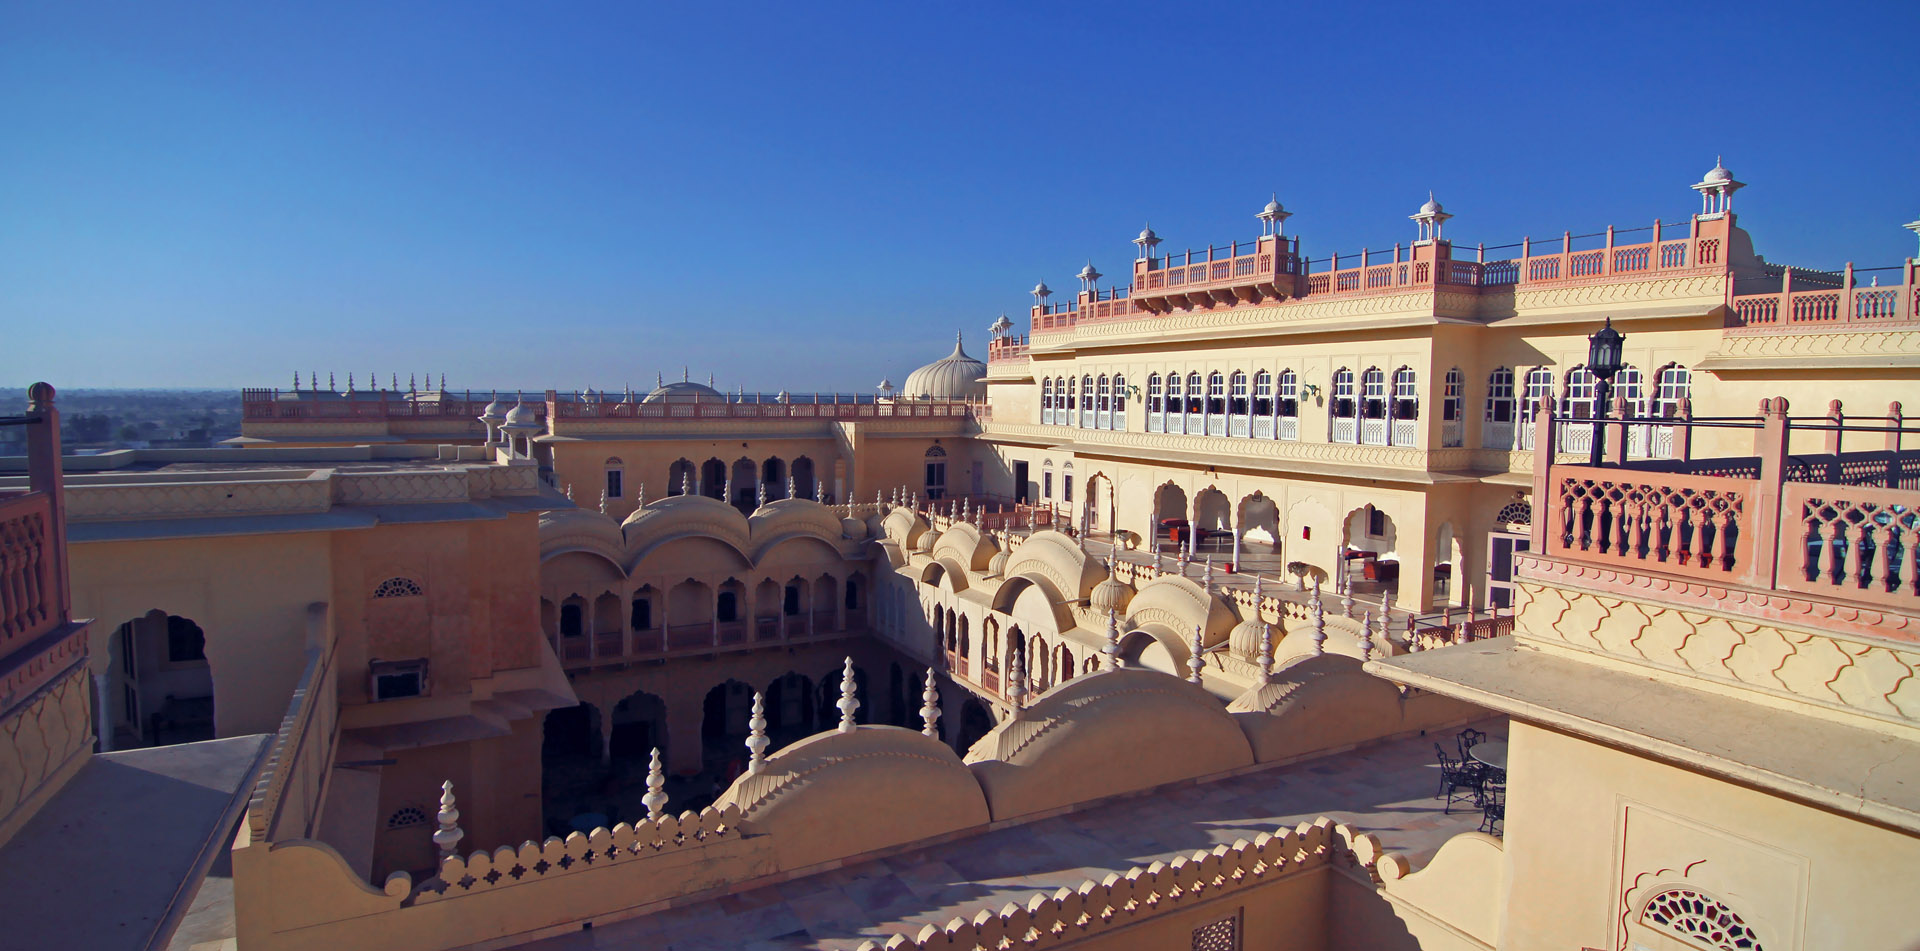 wedding palace in rajasthan